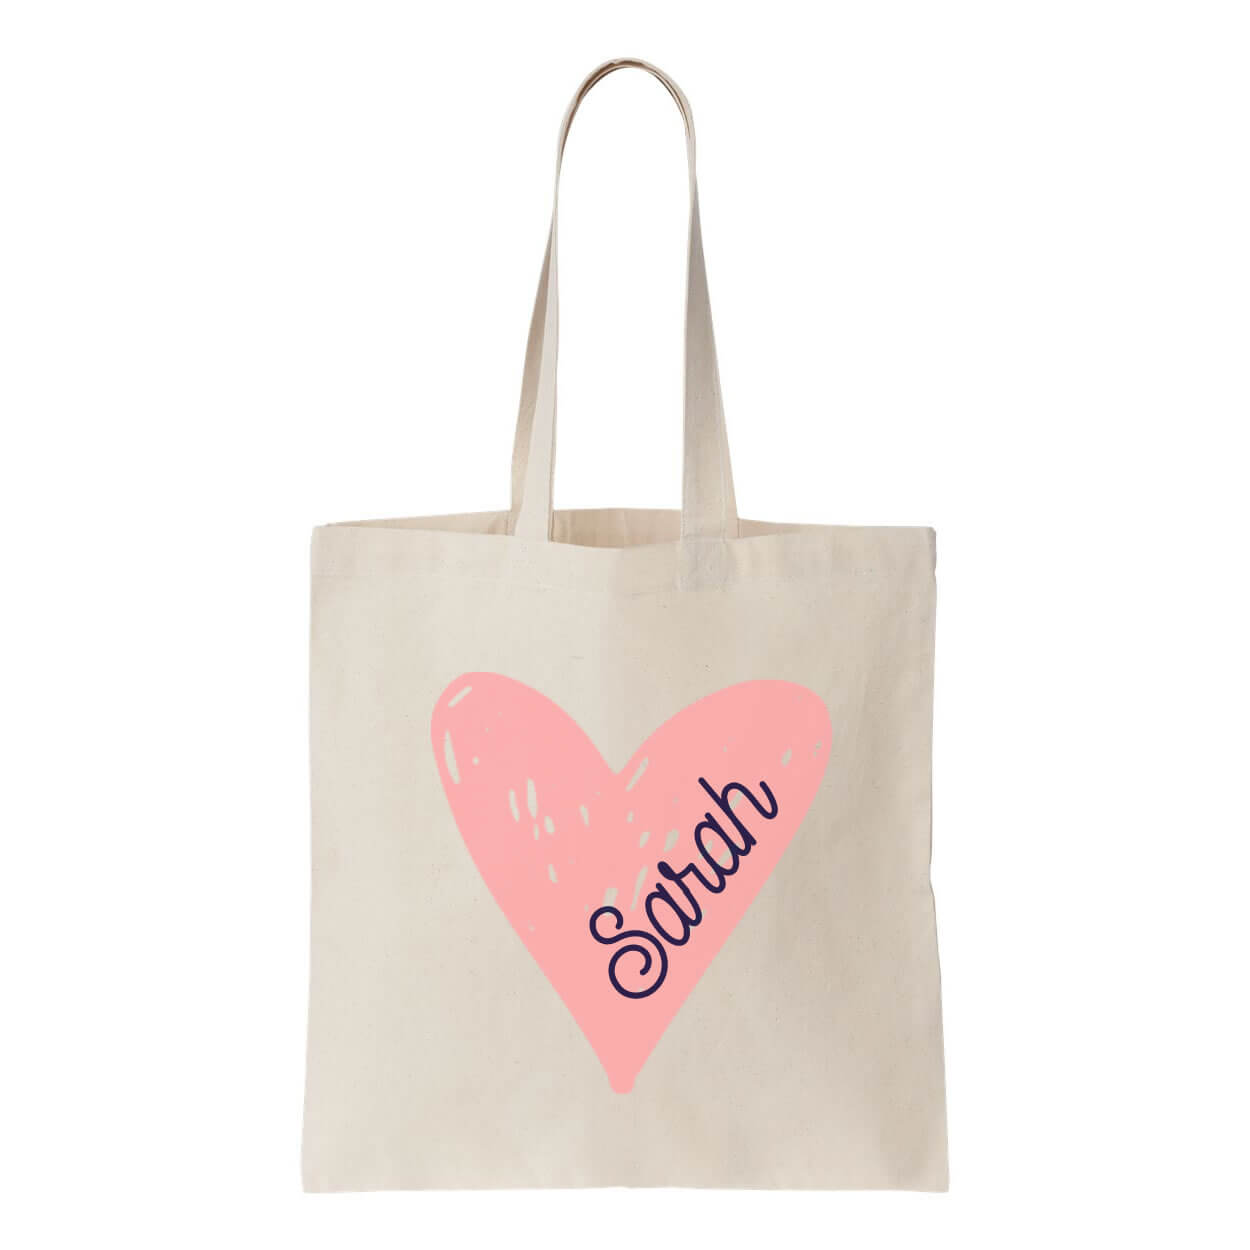 Wonderful Zipper Canvas Tote Bags Heart Canvas Tote Bag Name Canvas Tote Bag Heart Personalized Brides Canvas Tote Bags Name School inspiration Canvas Tote Bags